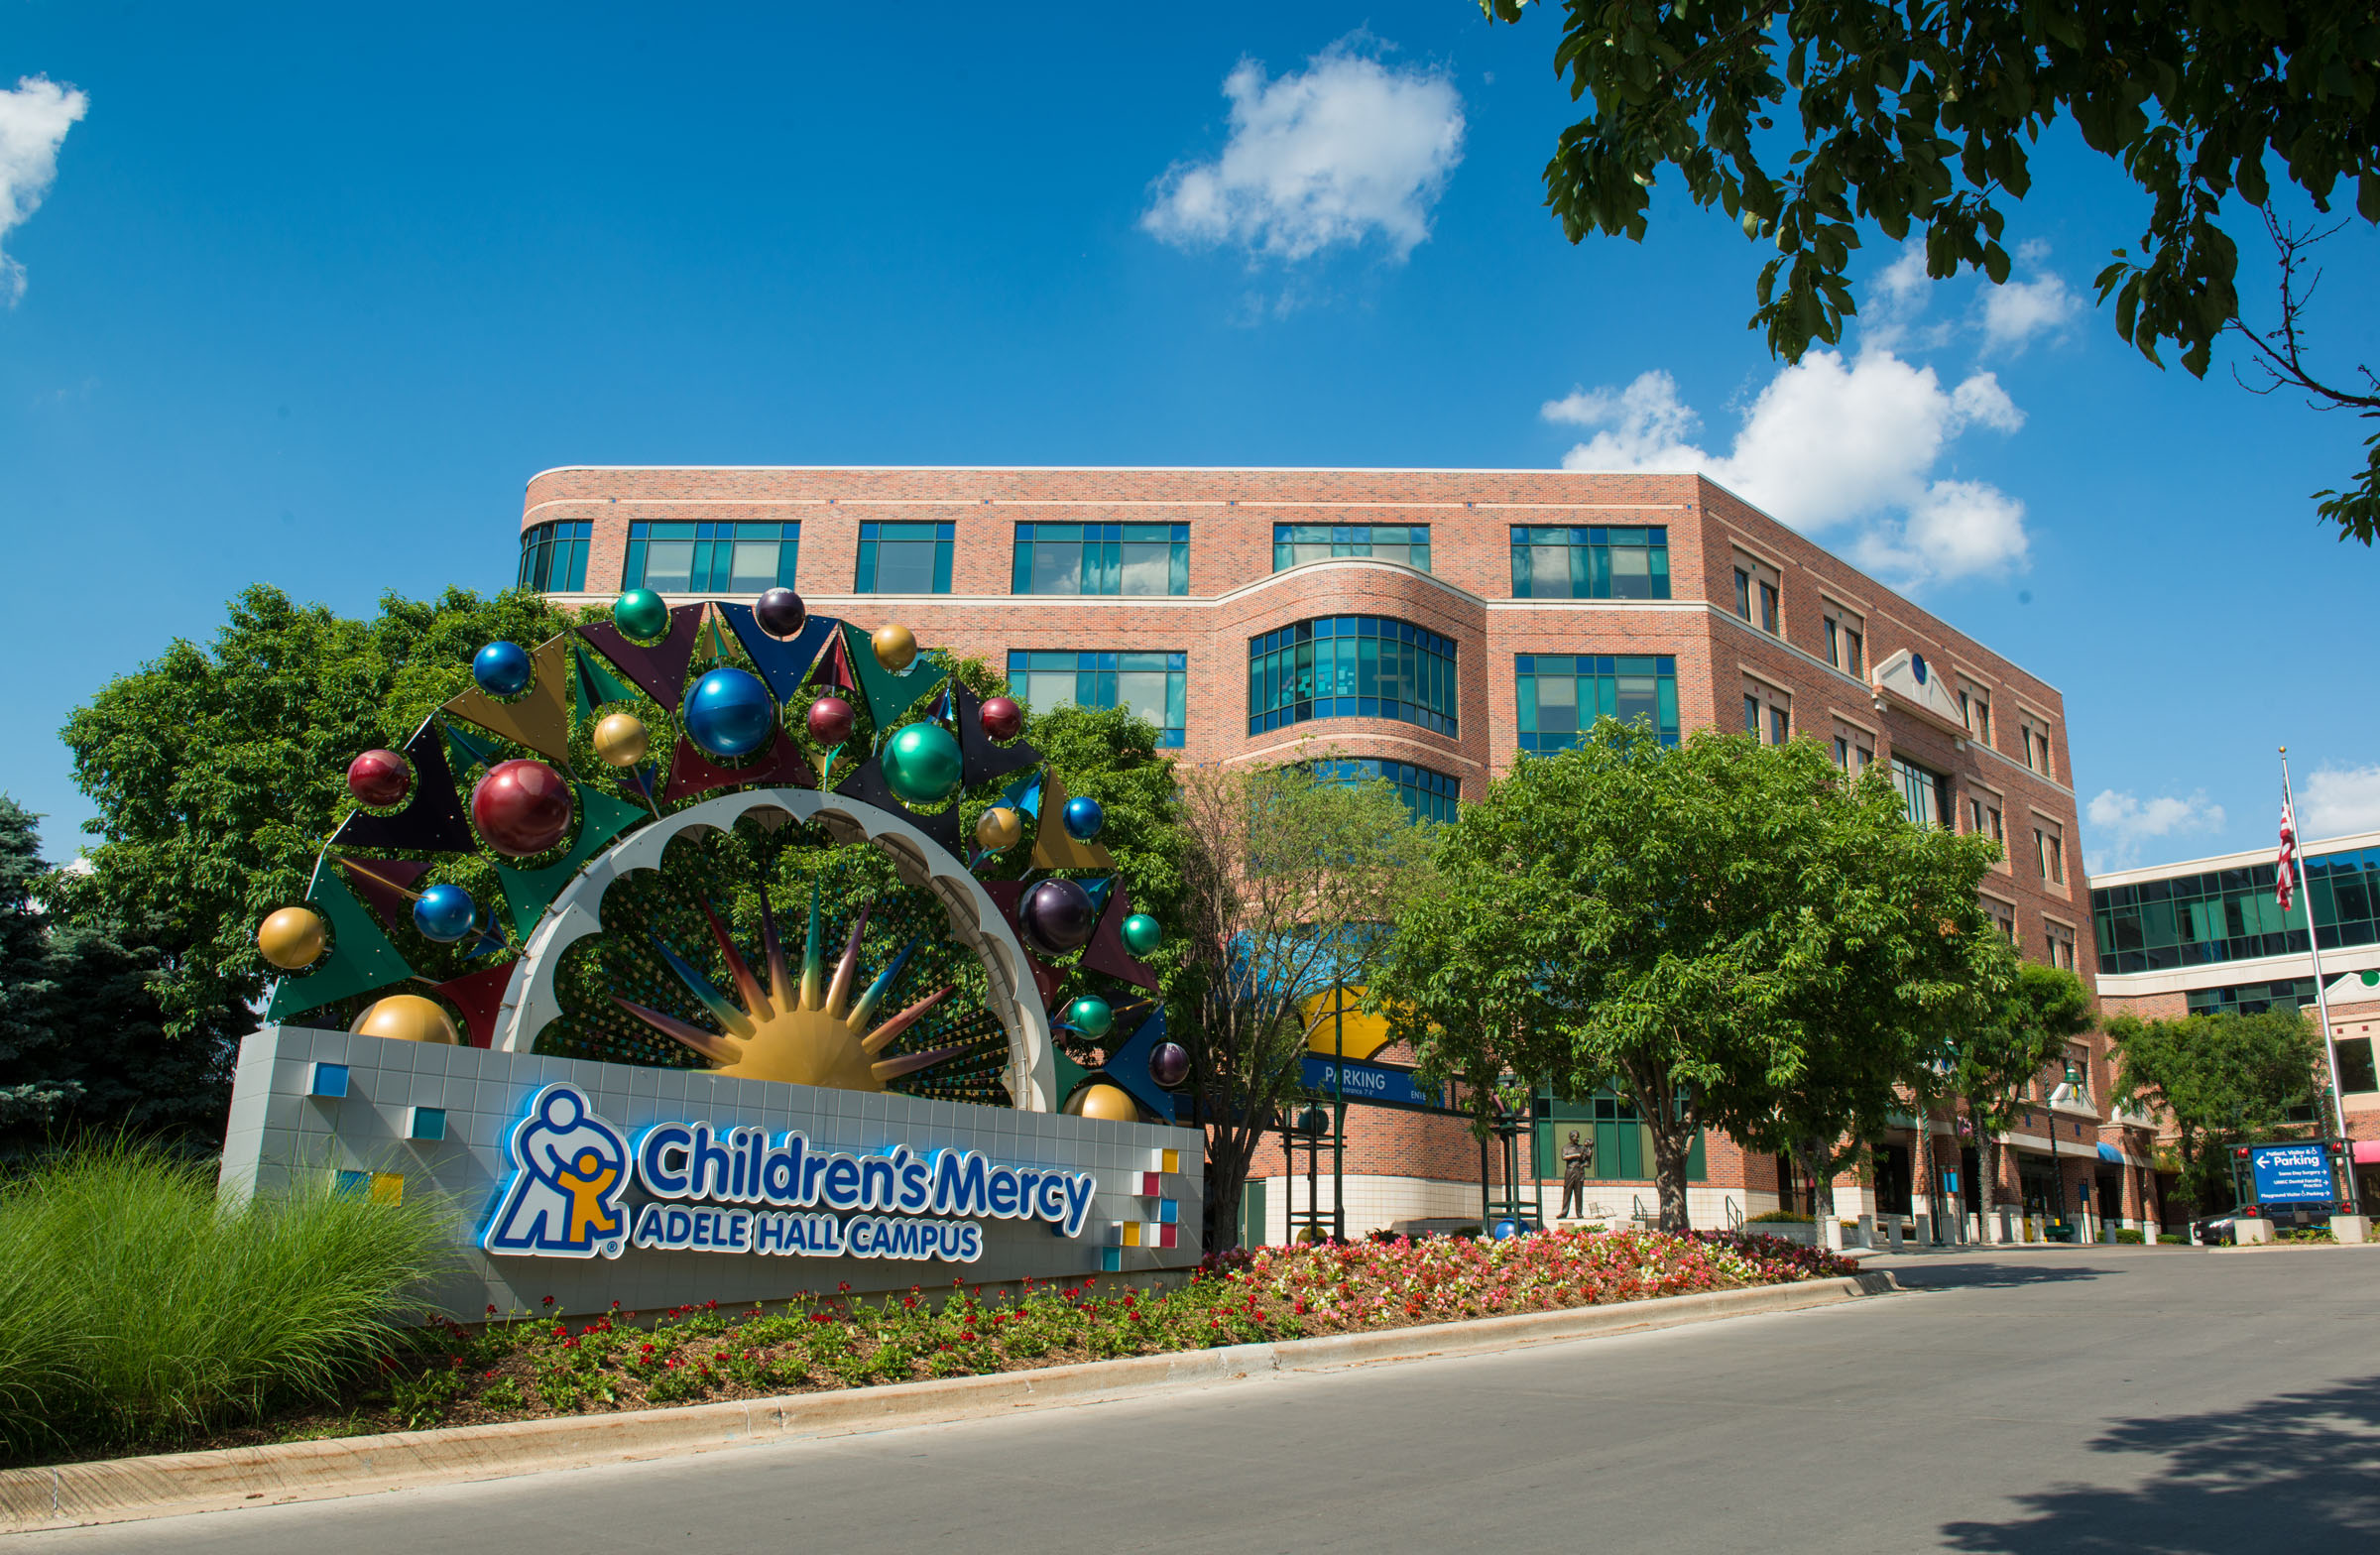 File Children S Mercy Hospital Adele Hall Campus Kansas